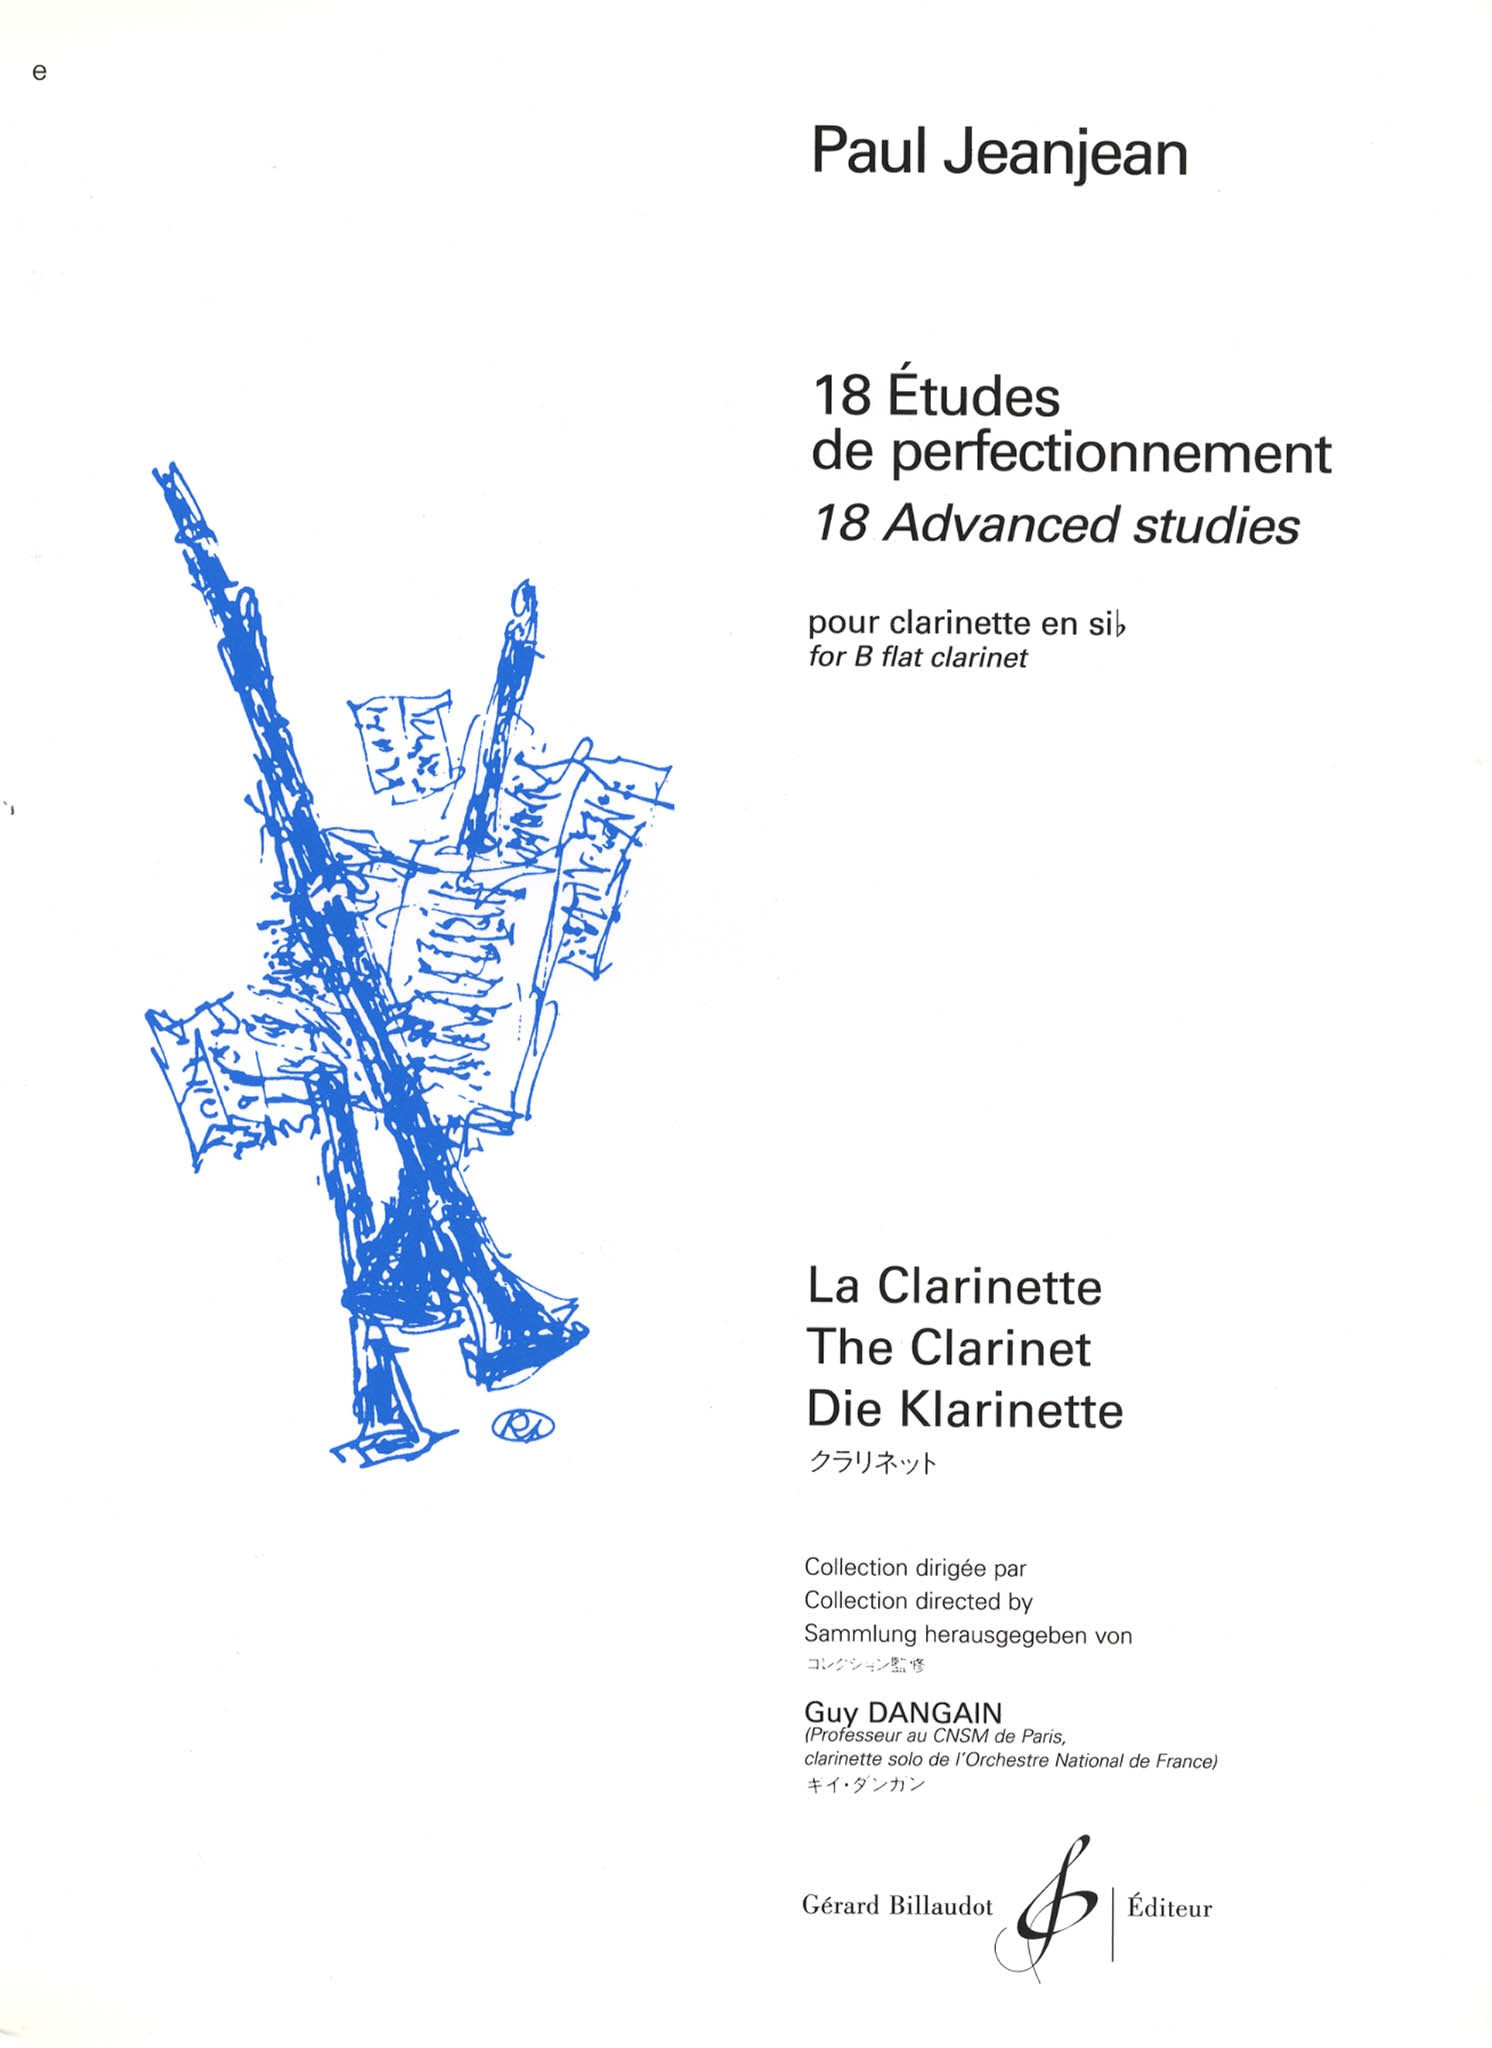 18 Advanced Studies for B-Flat Clarinet Cover